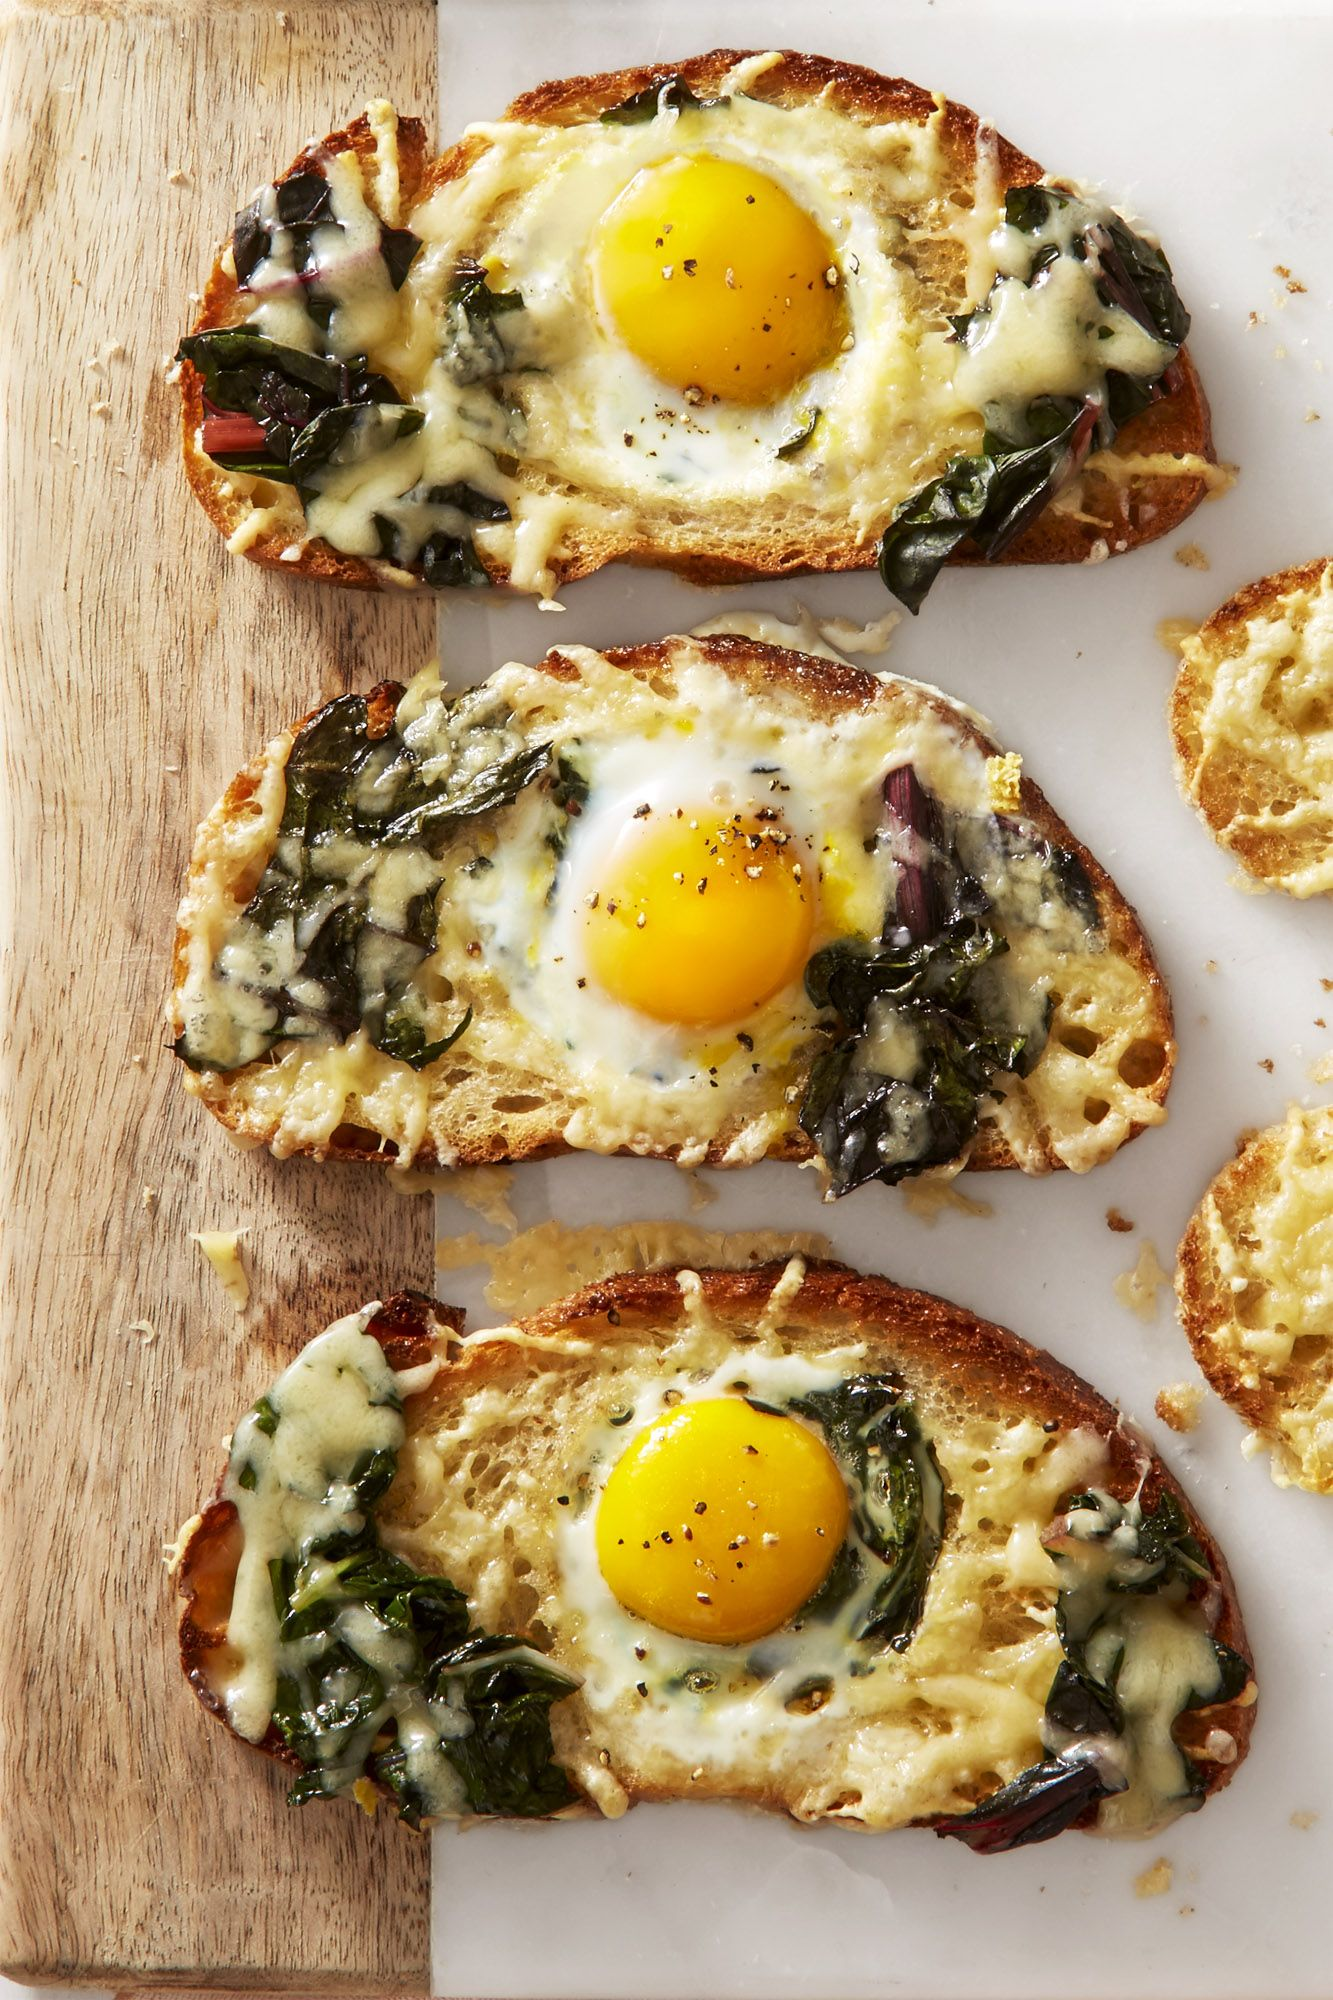 chard and gruyere eggs in a hole